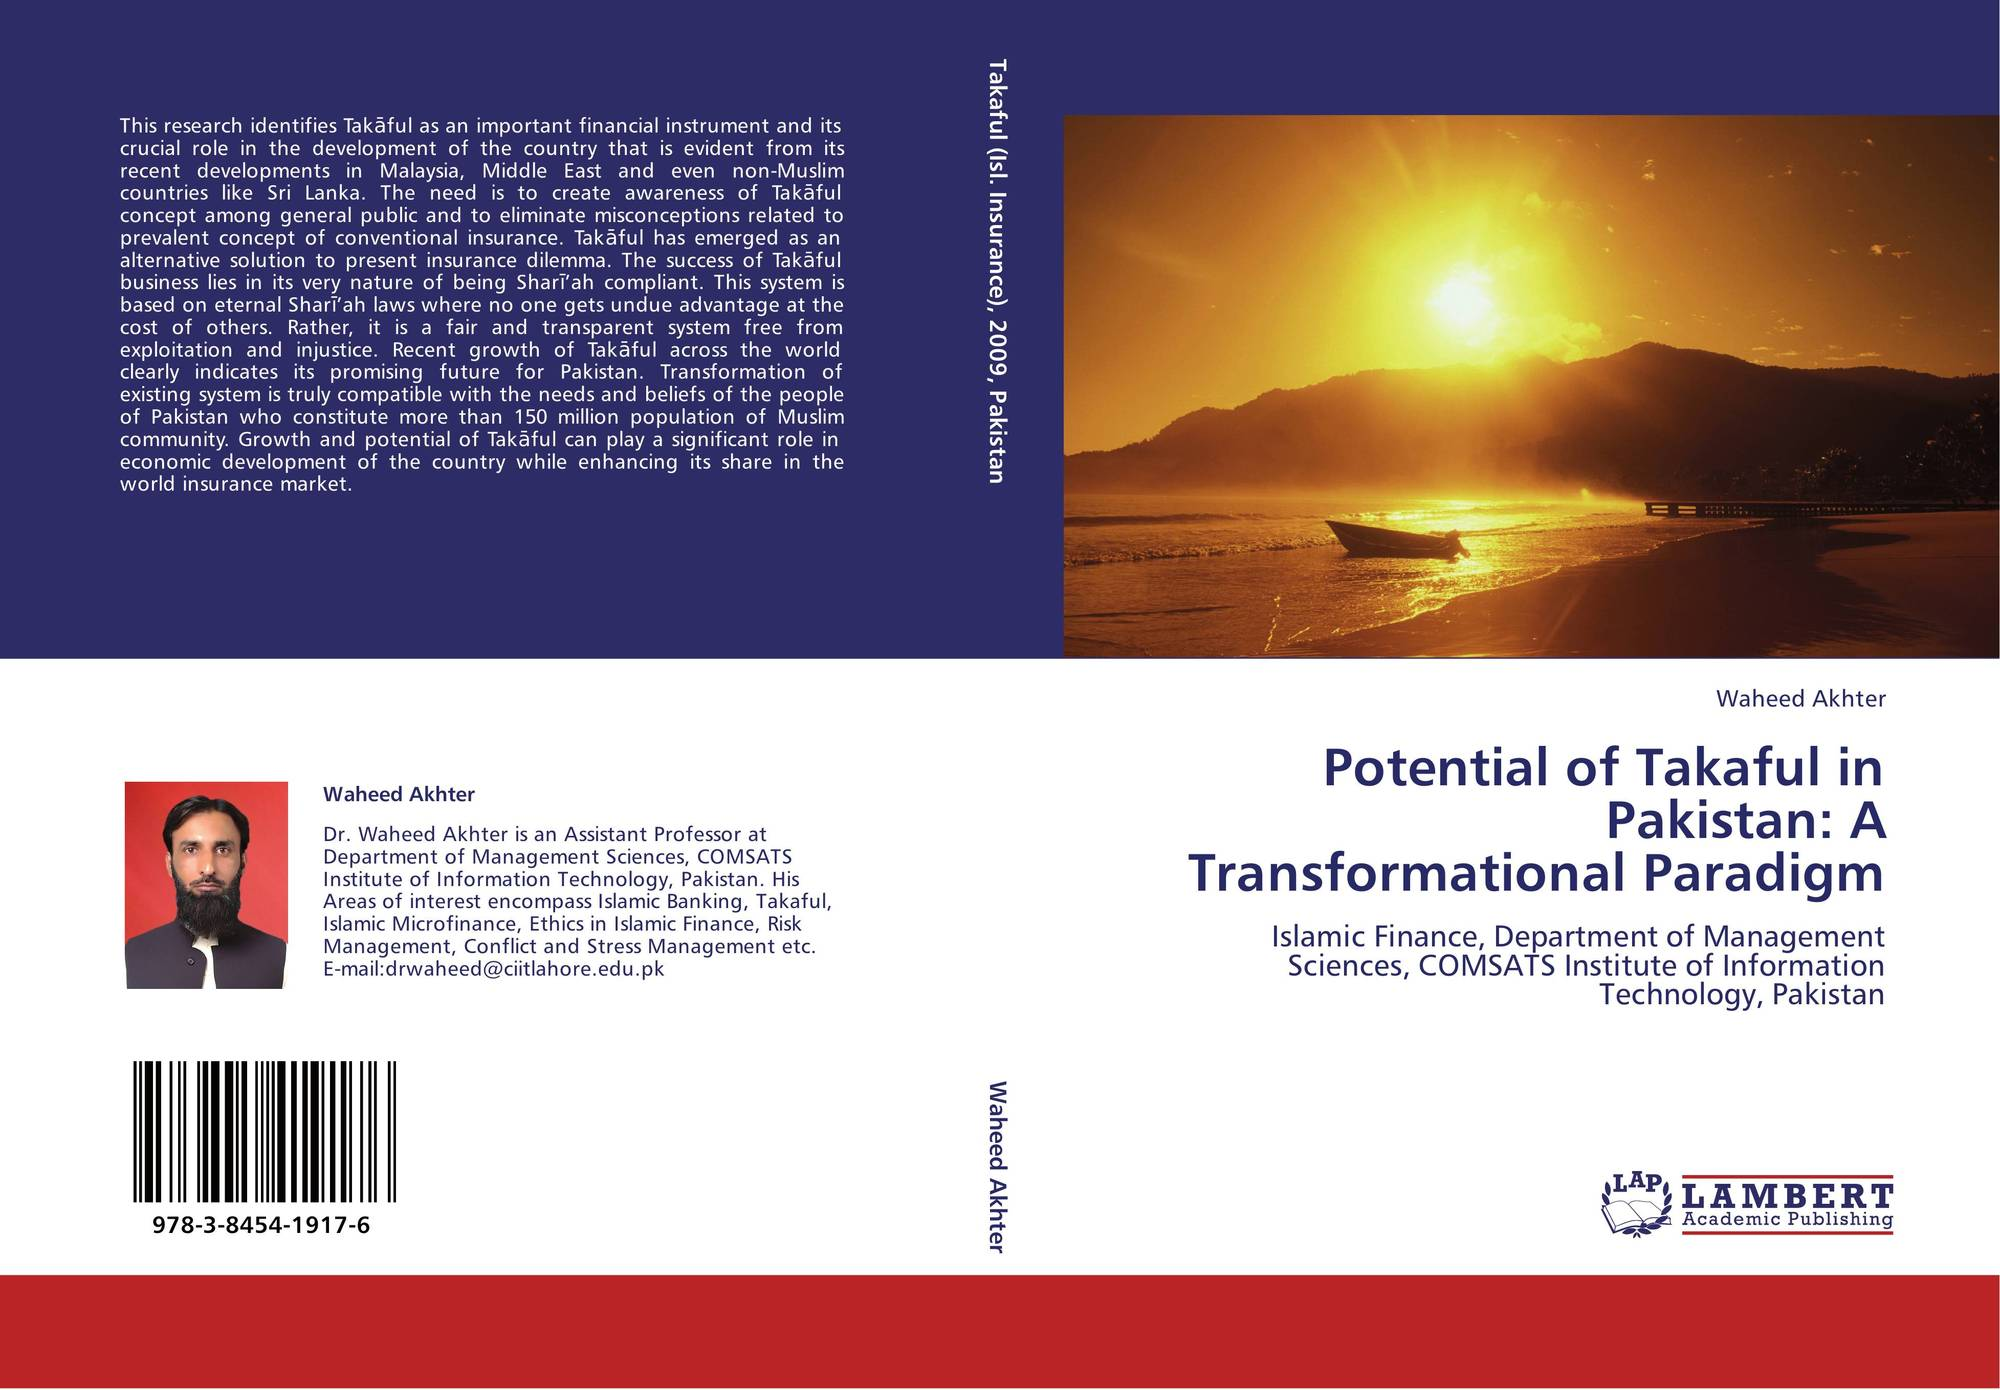 Potential of Takaful in Pakistan: A Transformational Paradigm, 978-3